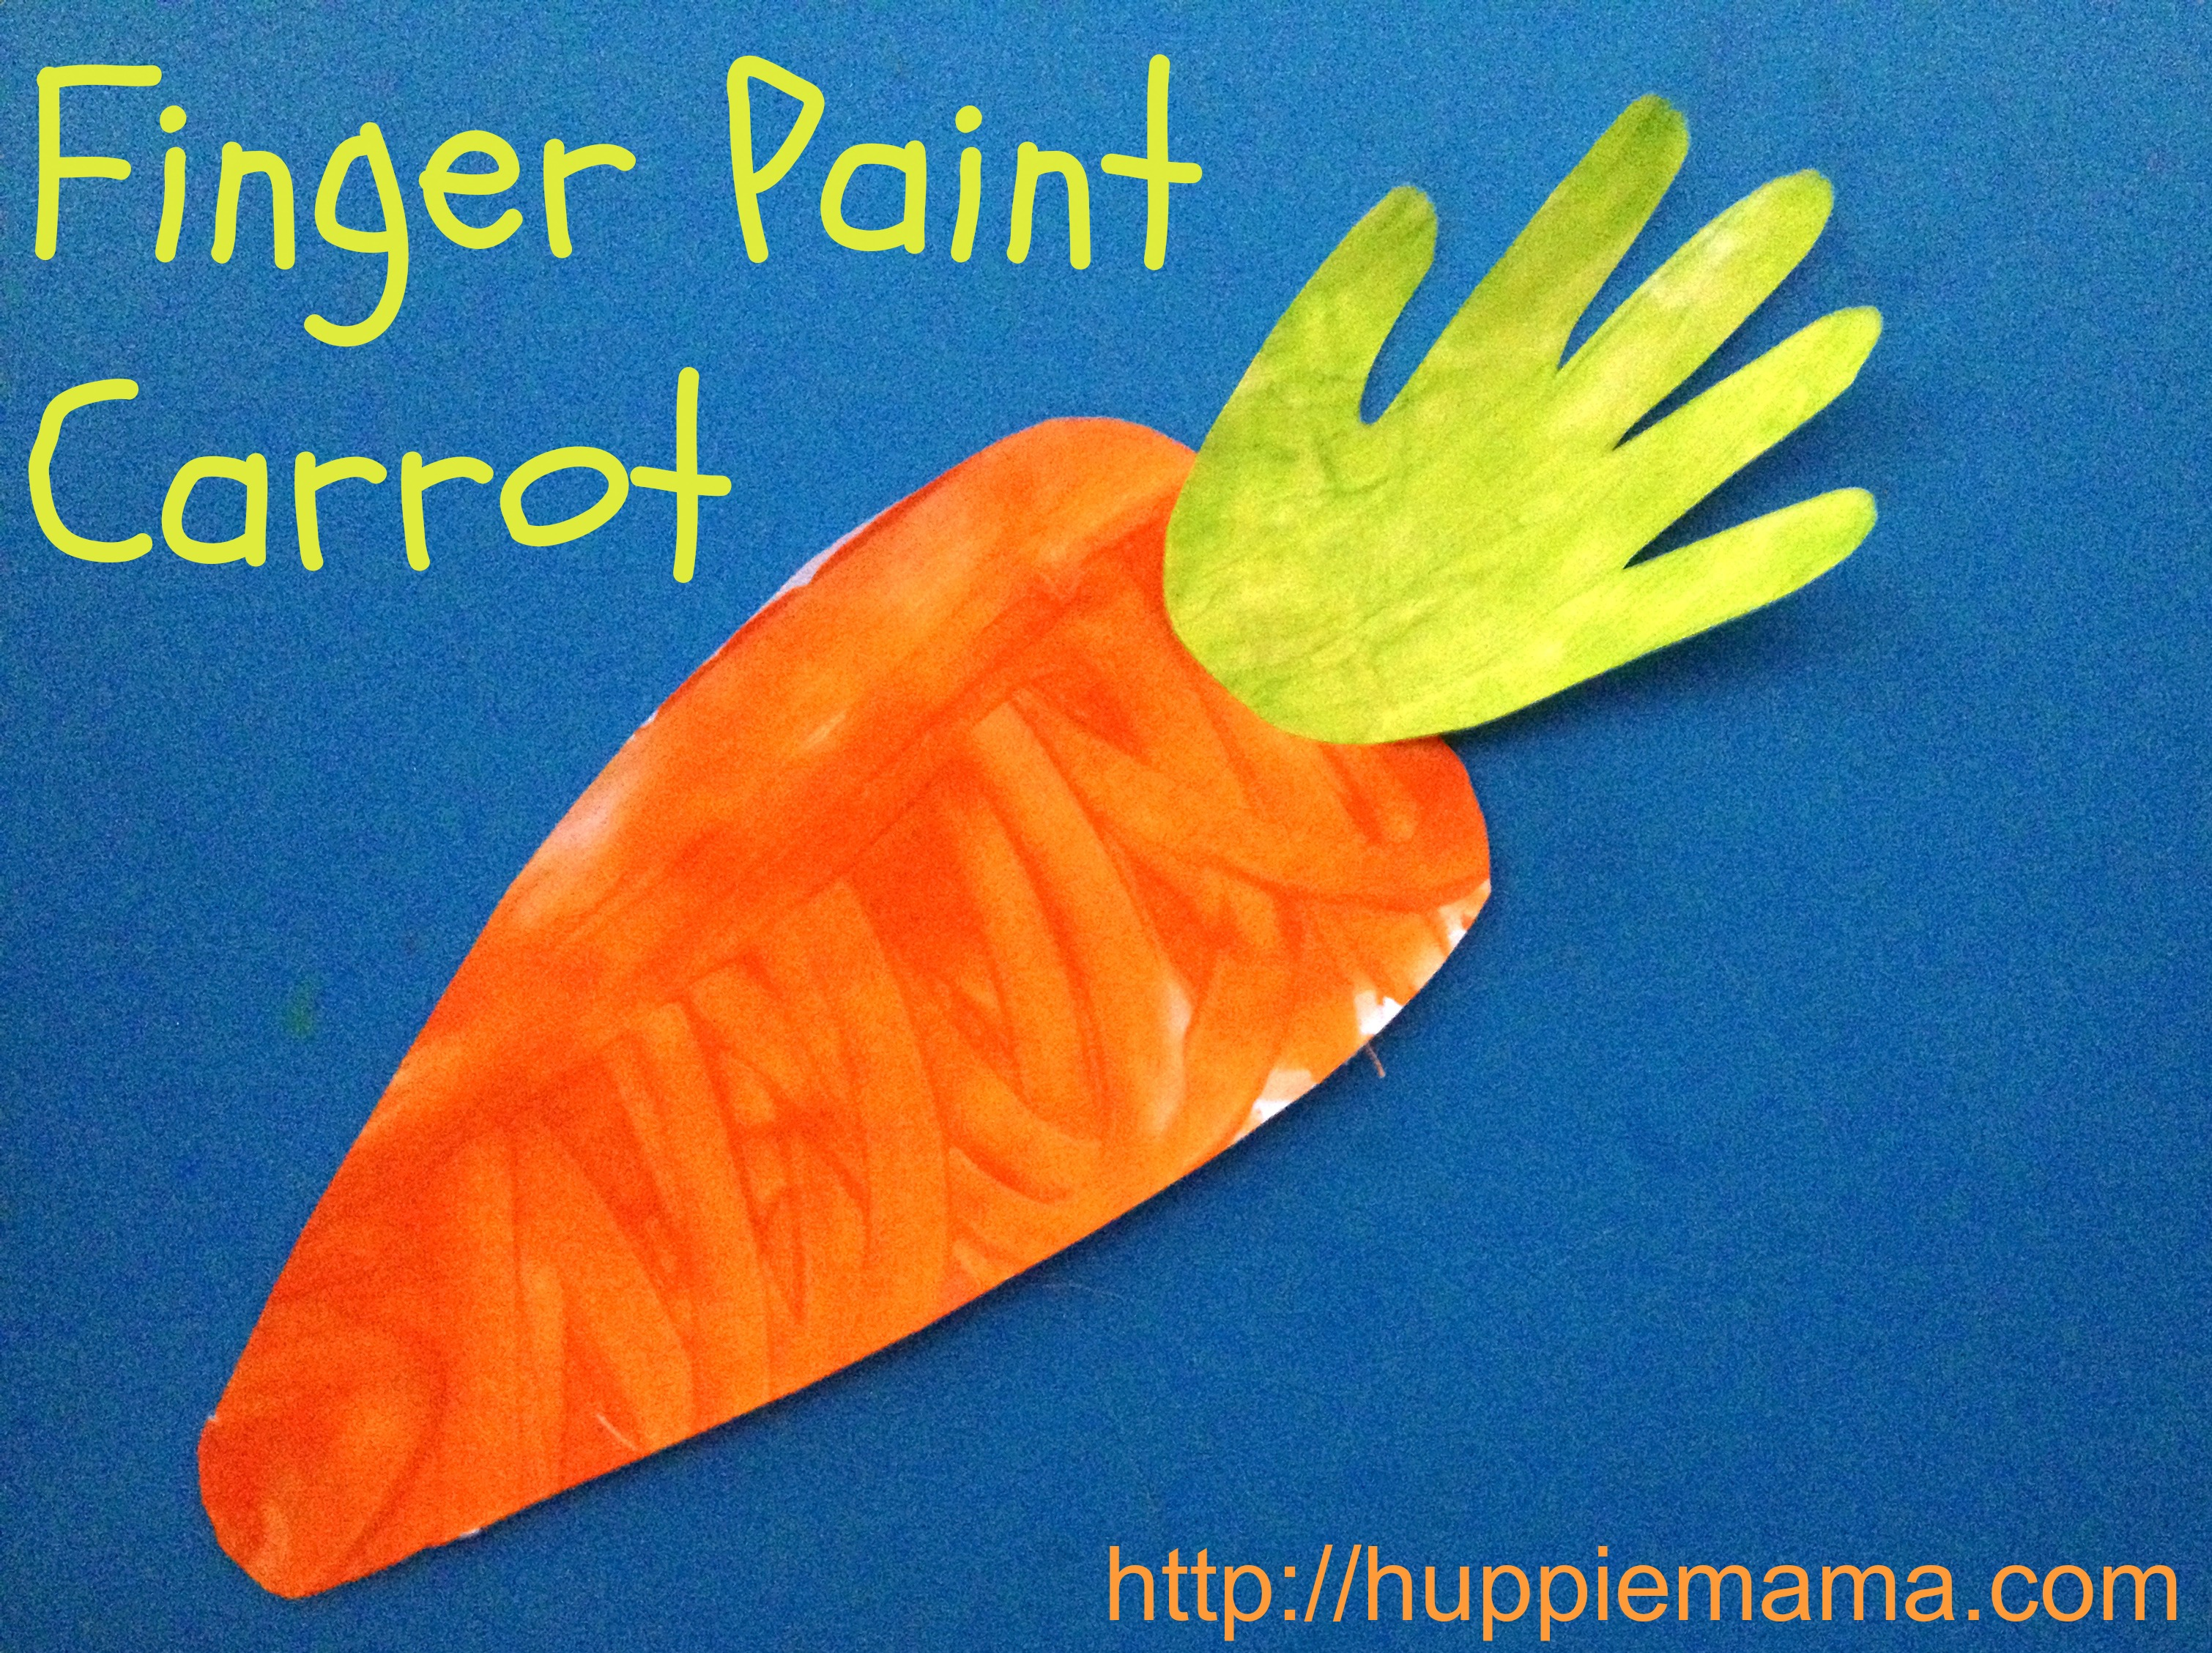 Food Craft Finger Paint Carrot  sc 1 st  Our Potluck Family & Food Craft: Finger Paint Carrot - Our Potluck Family